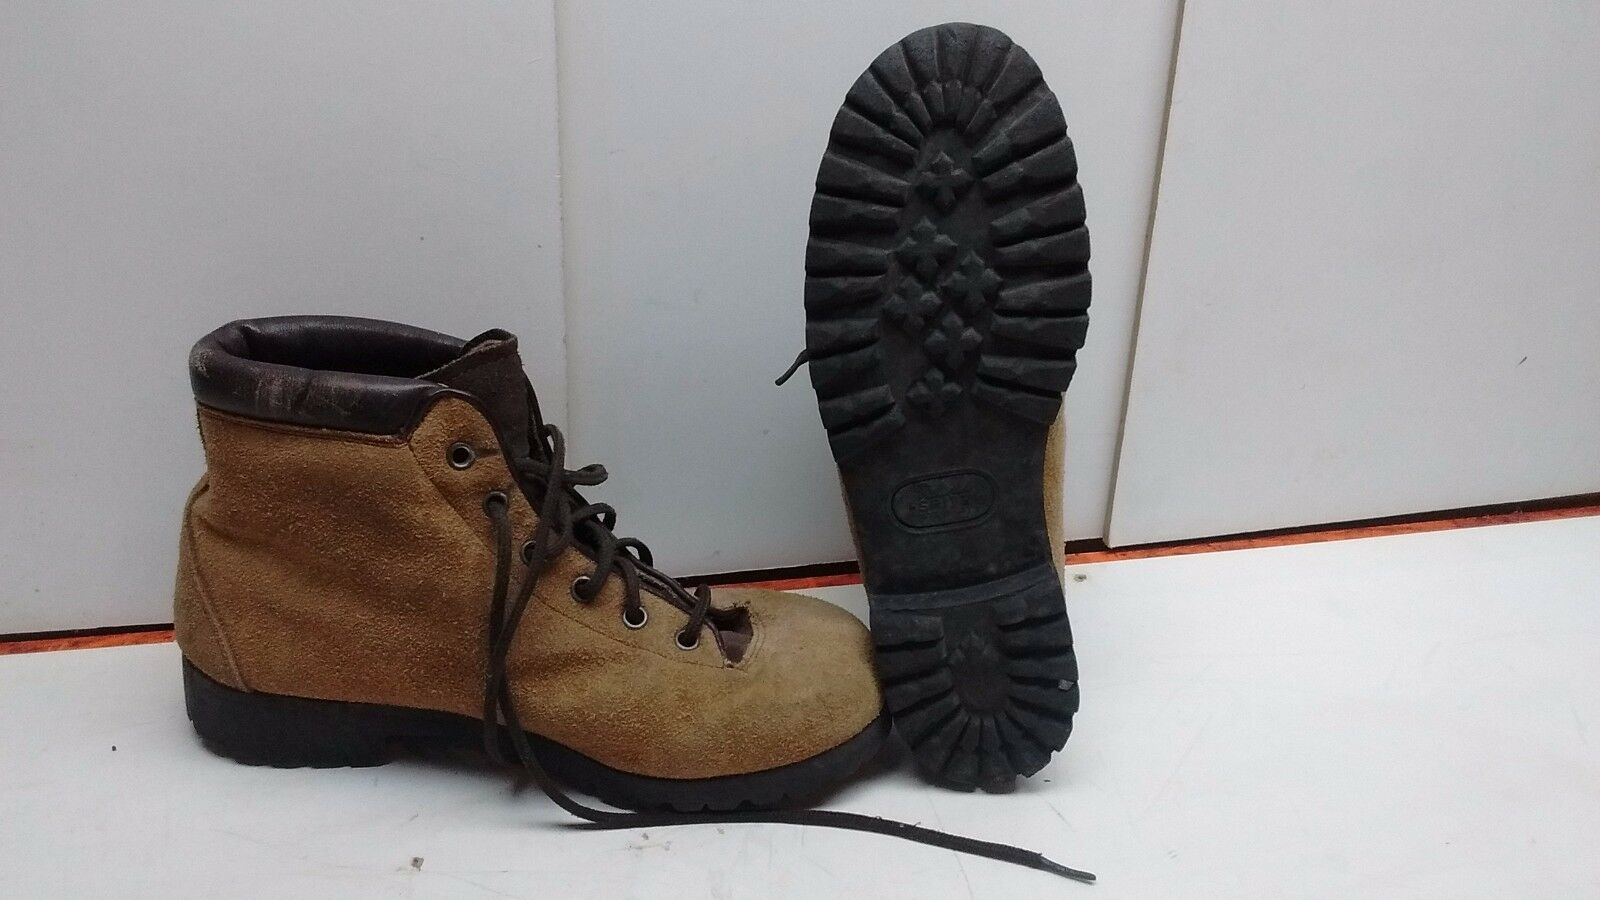 PATONS SPITZ Size 9M Brown Leather Ankle Boot Mountain Toppers Hiking shoes Women